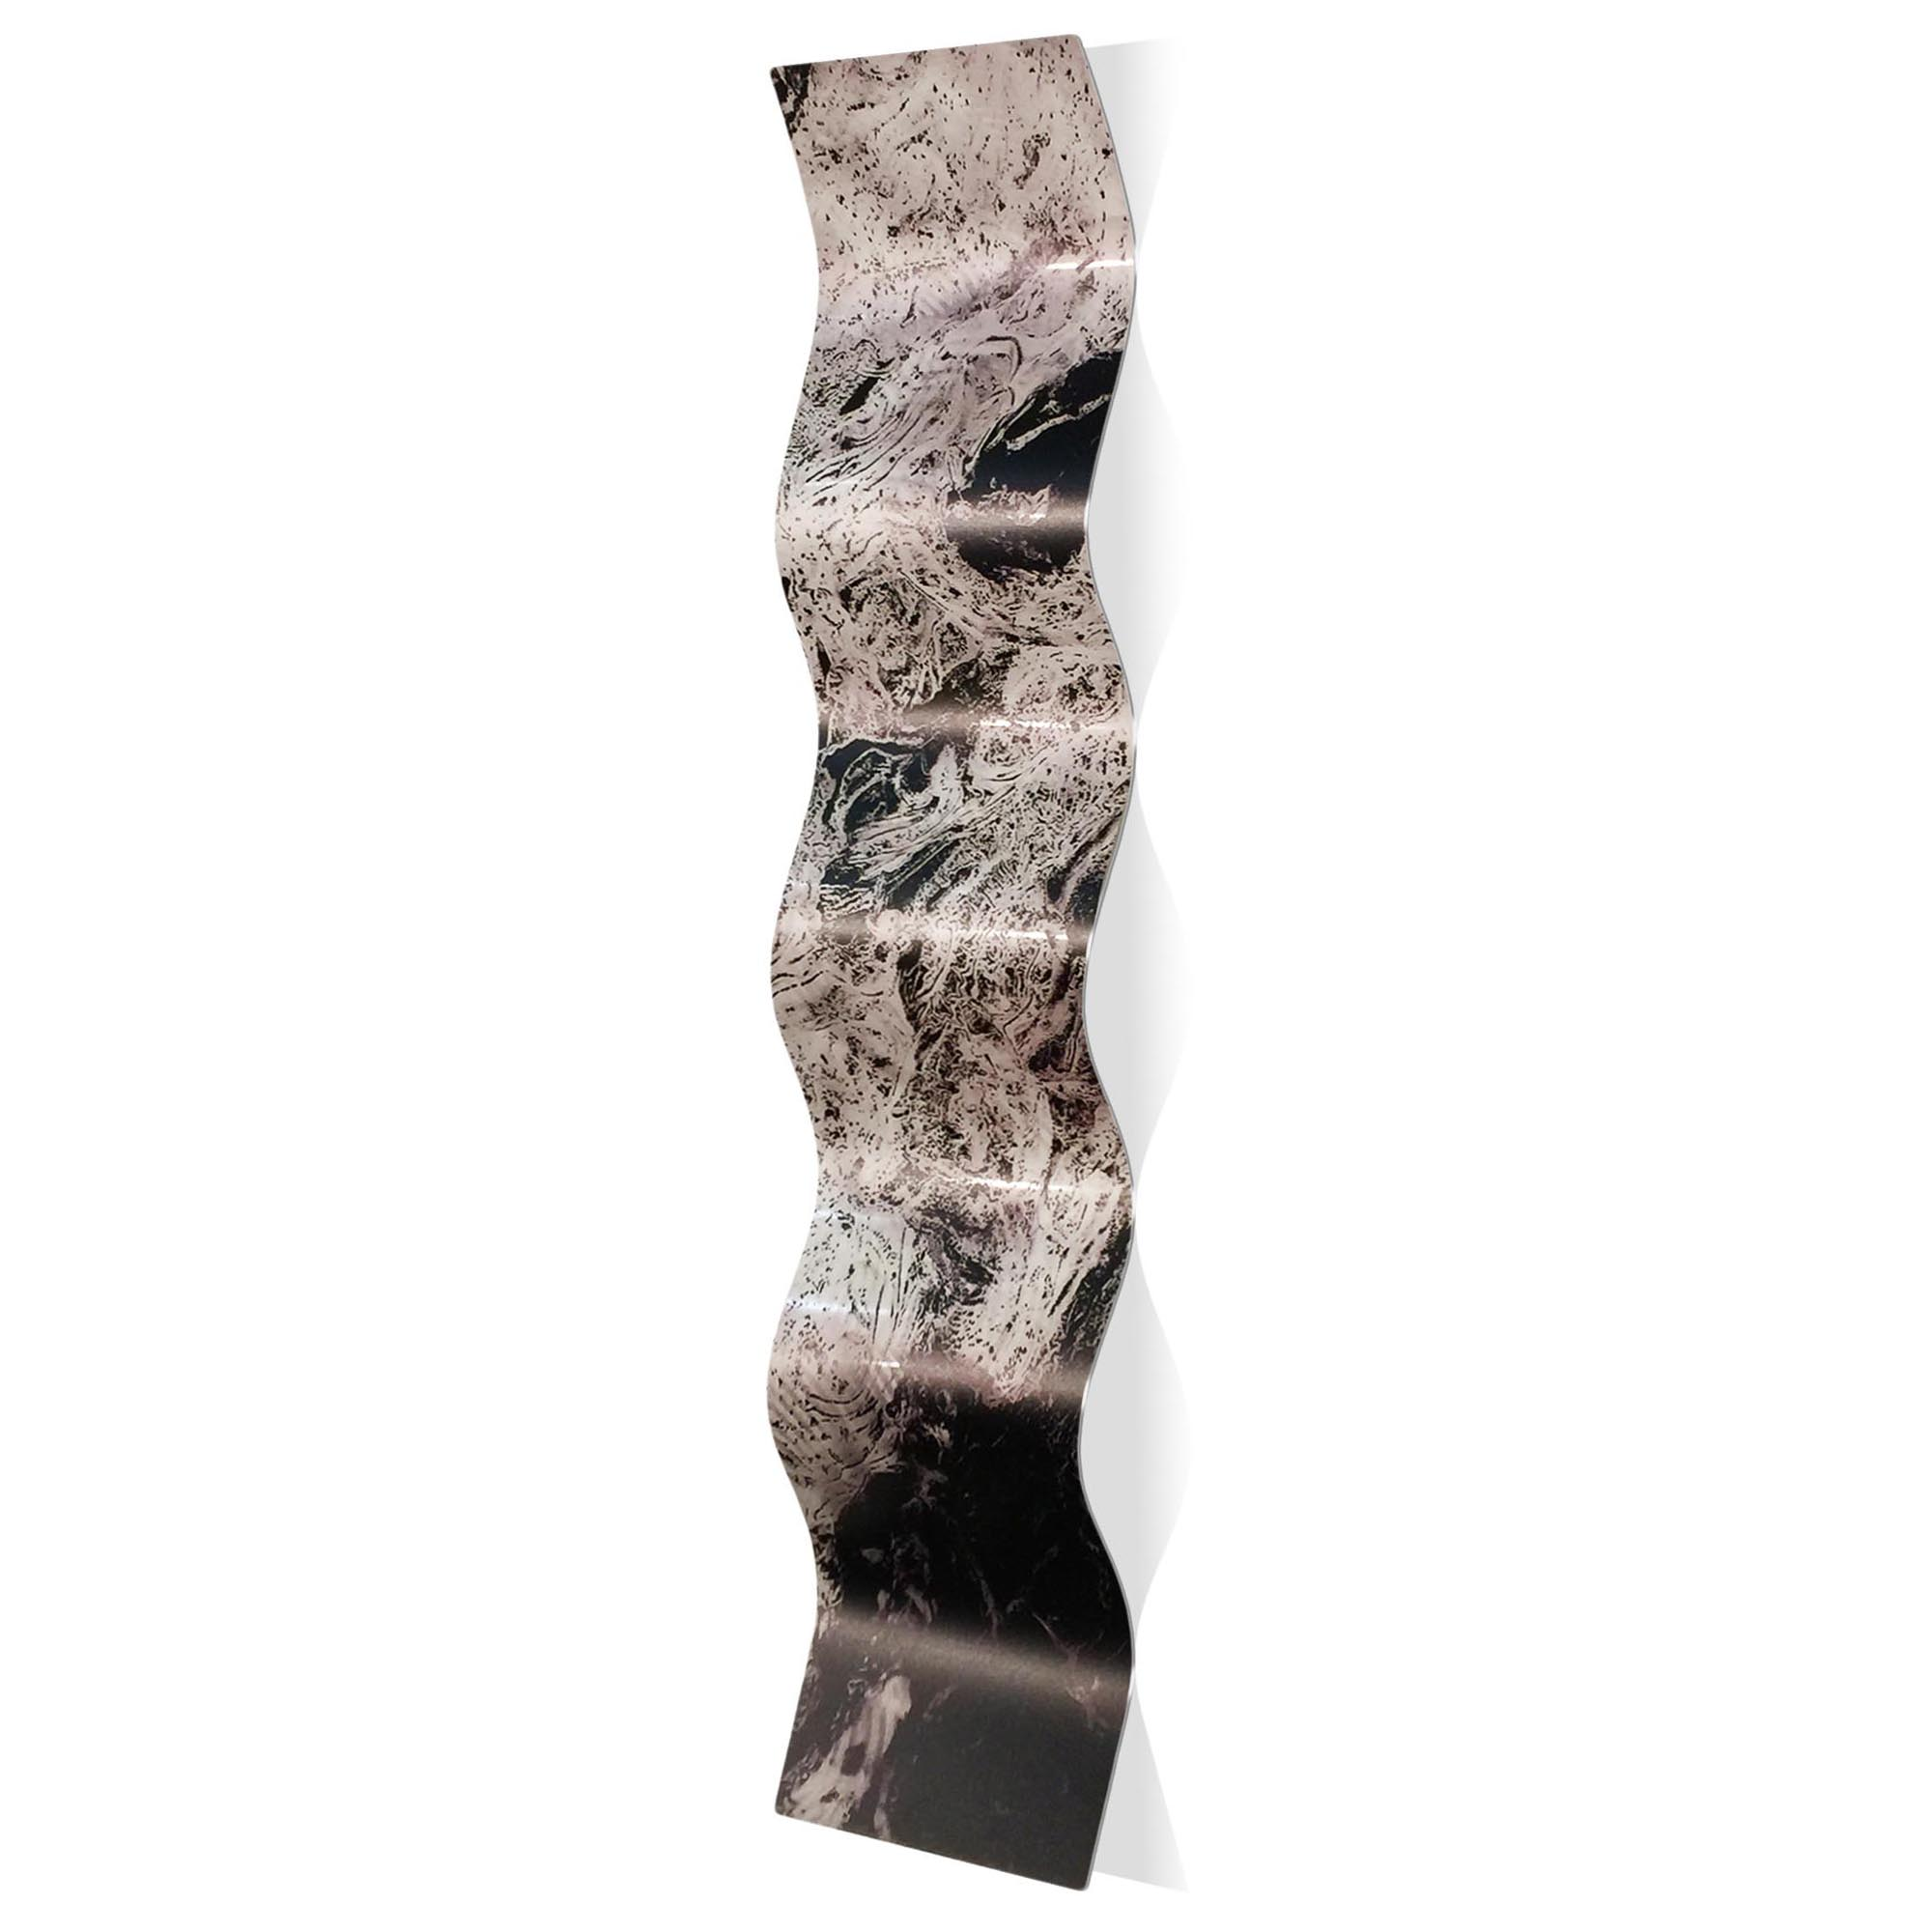 Storm Black Wave 9.5x44in. Metal Eclectic Decor